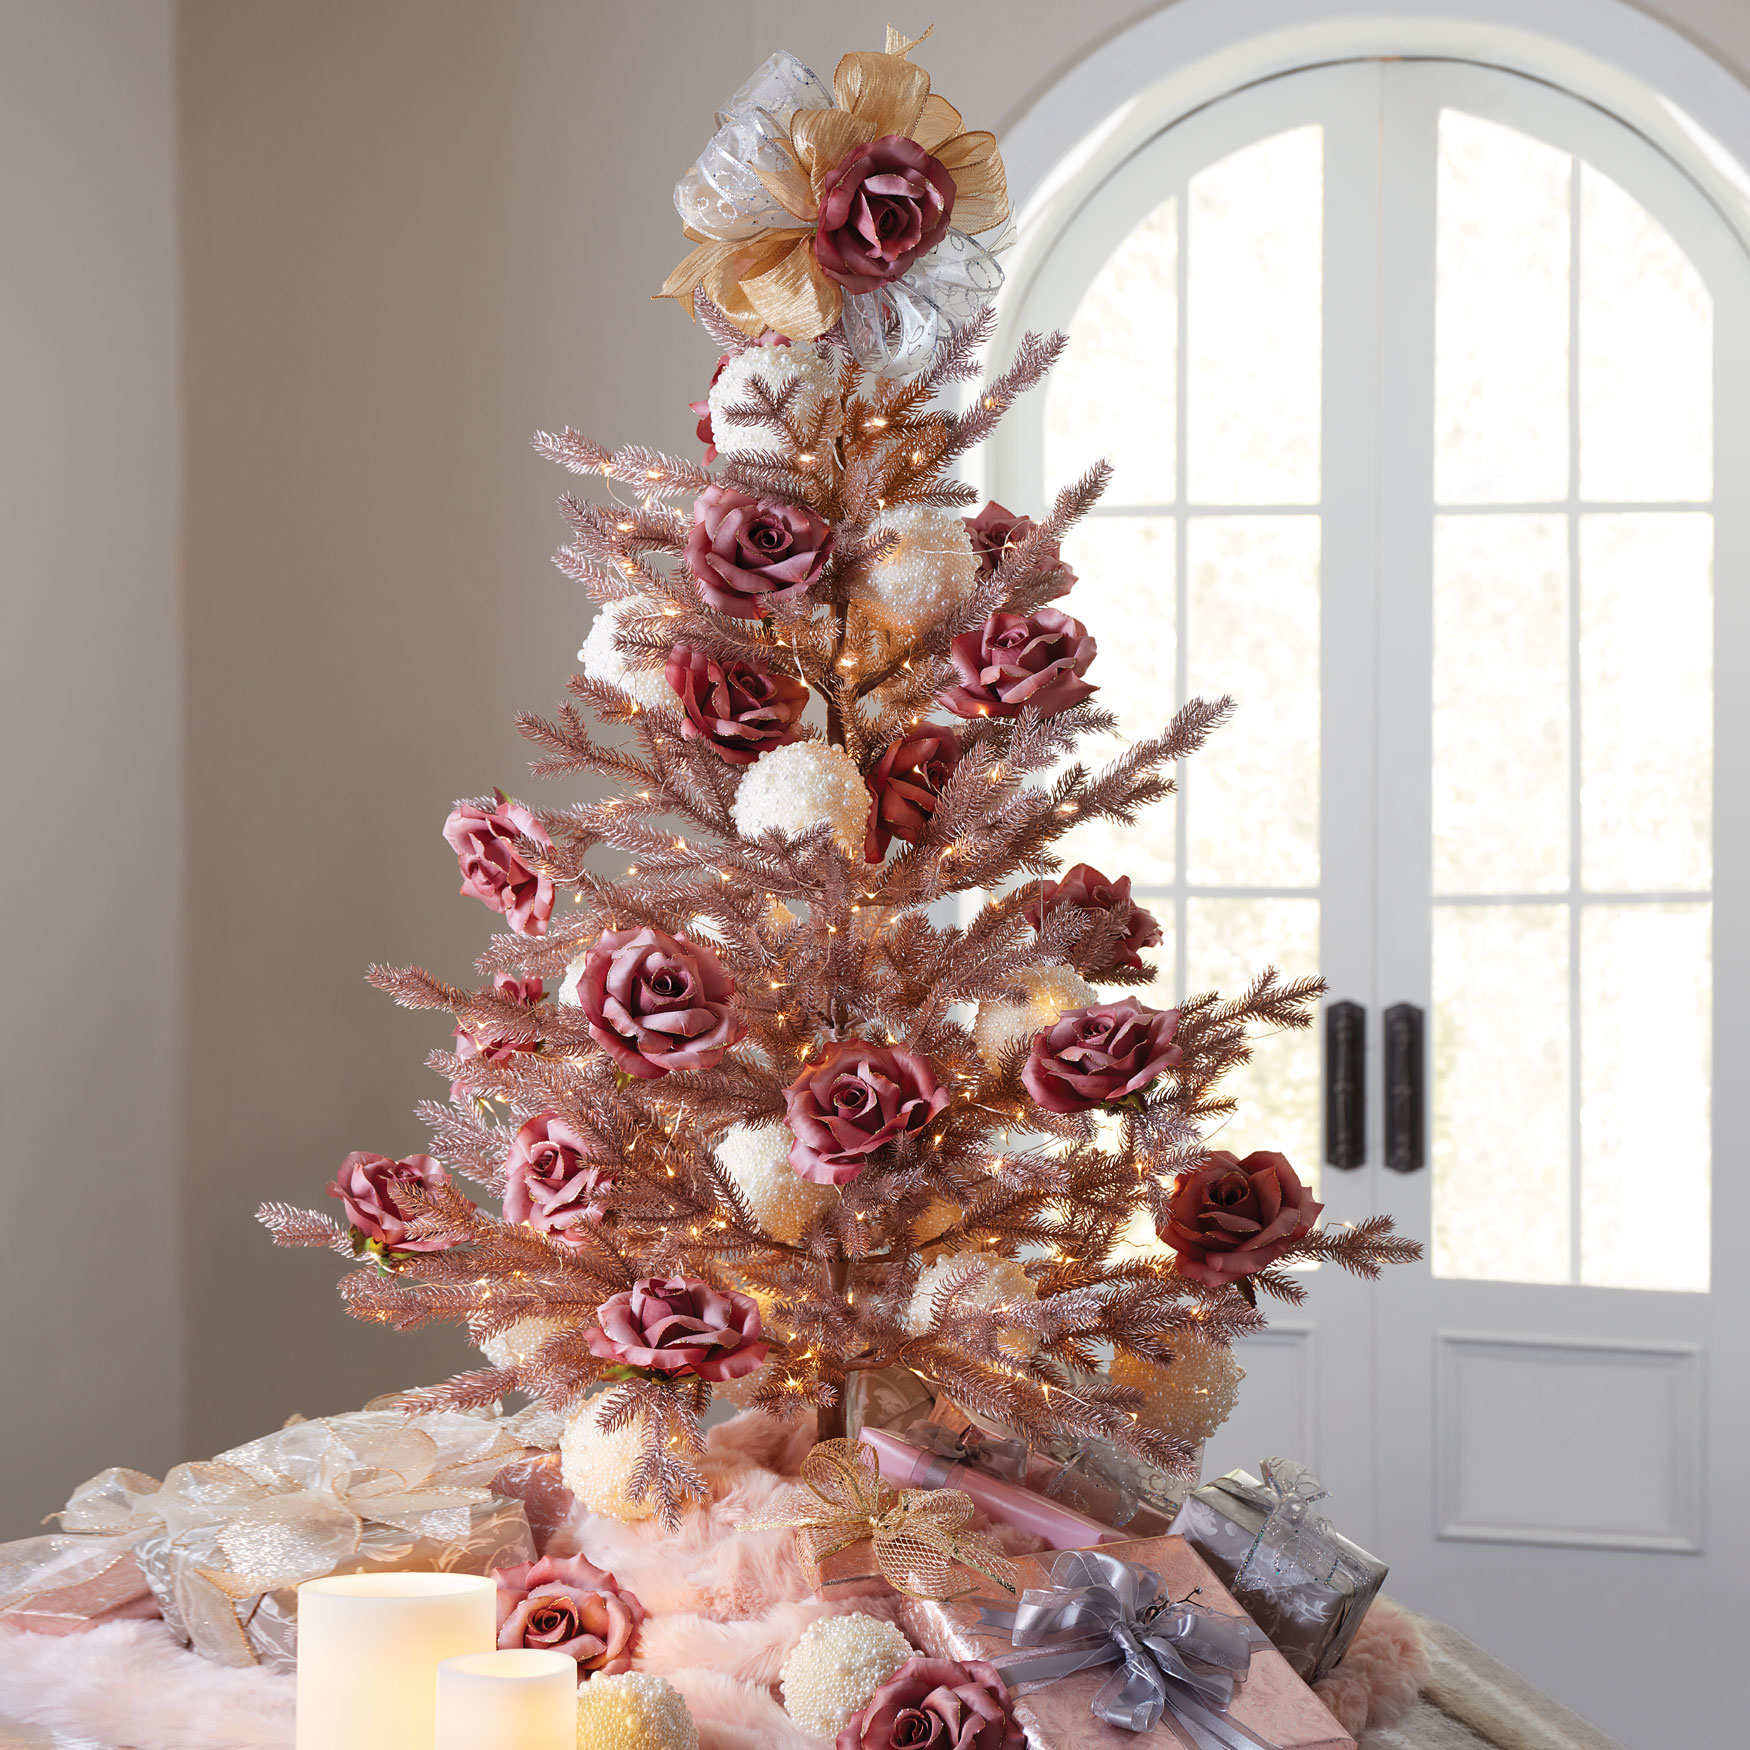 4 Rose Gold Christmas Tree